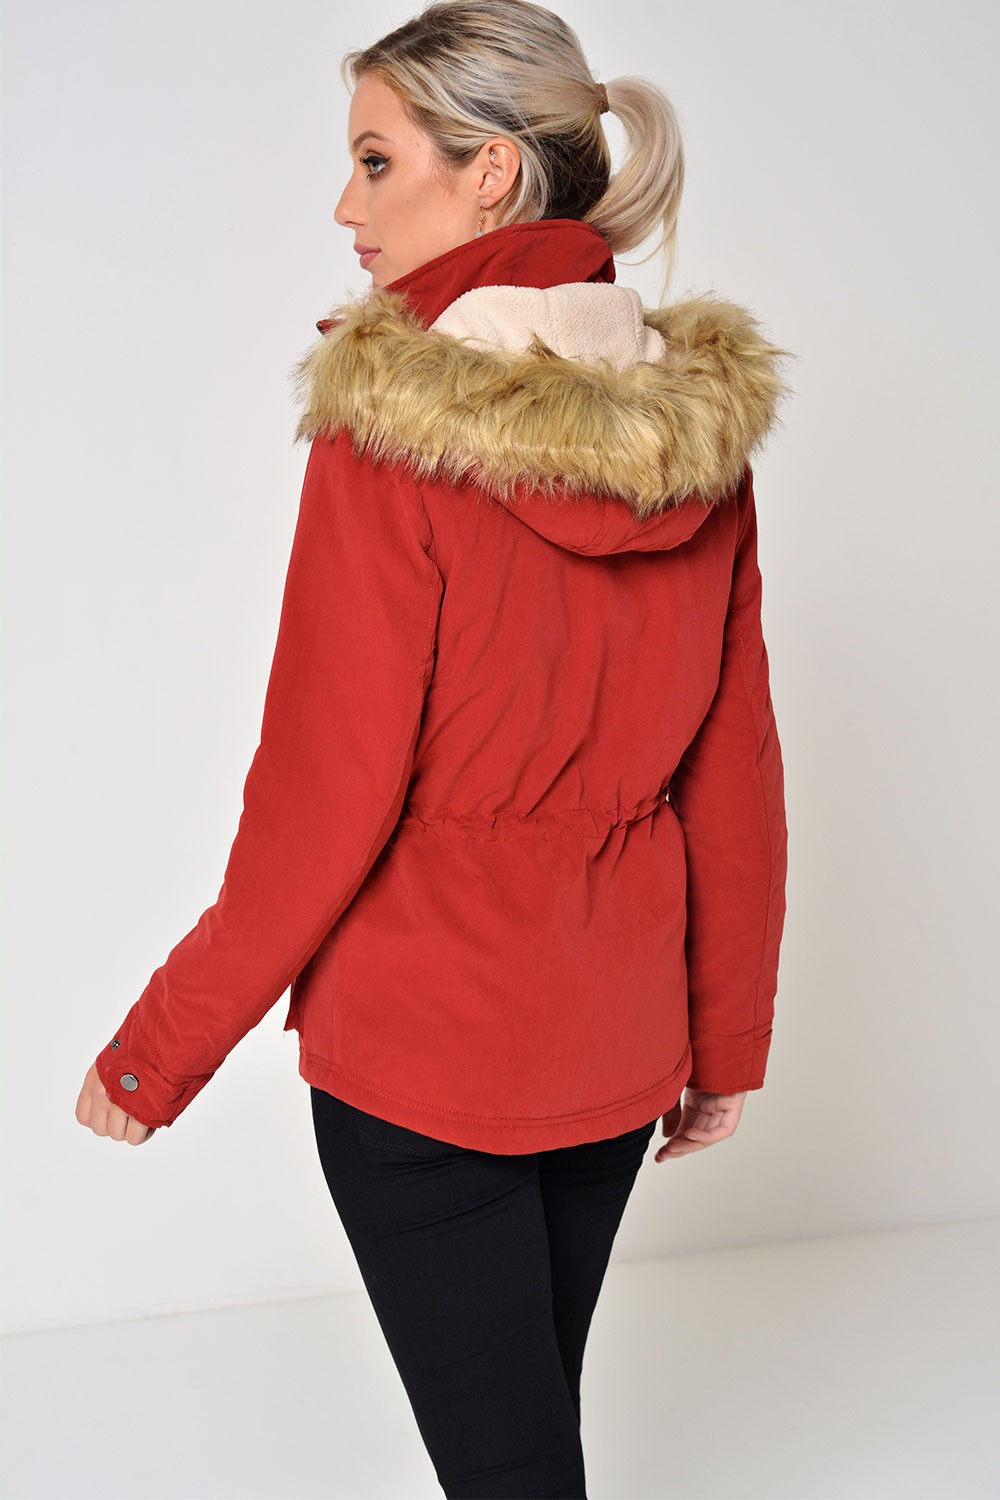 Only Starlight Short Fur Parka Coat in Red | iCLOTHING